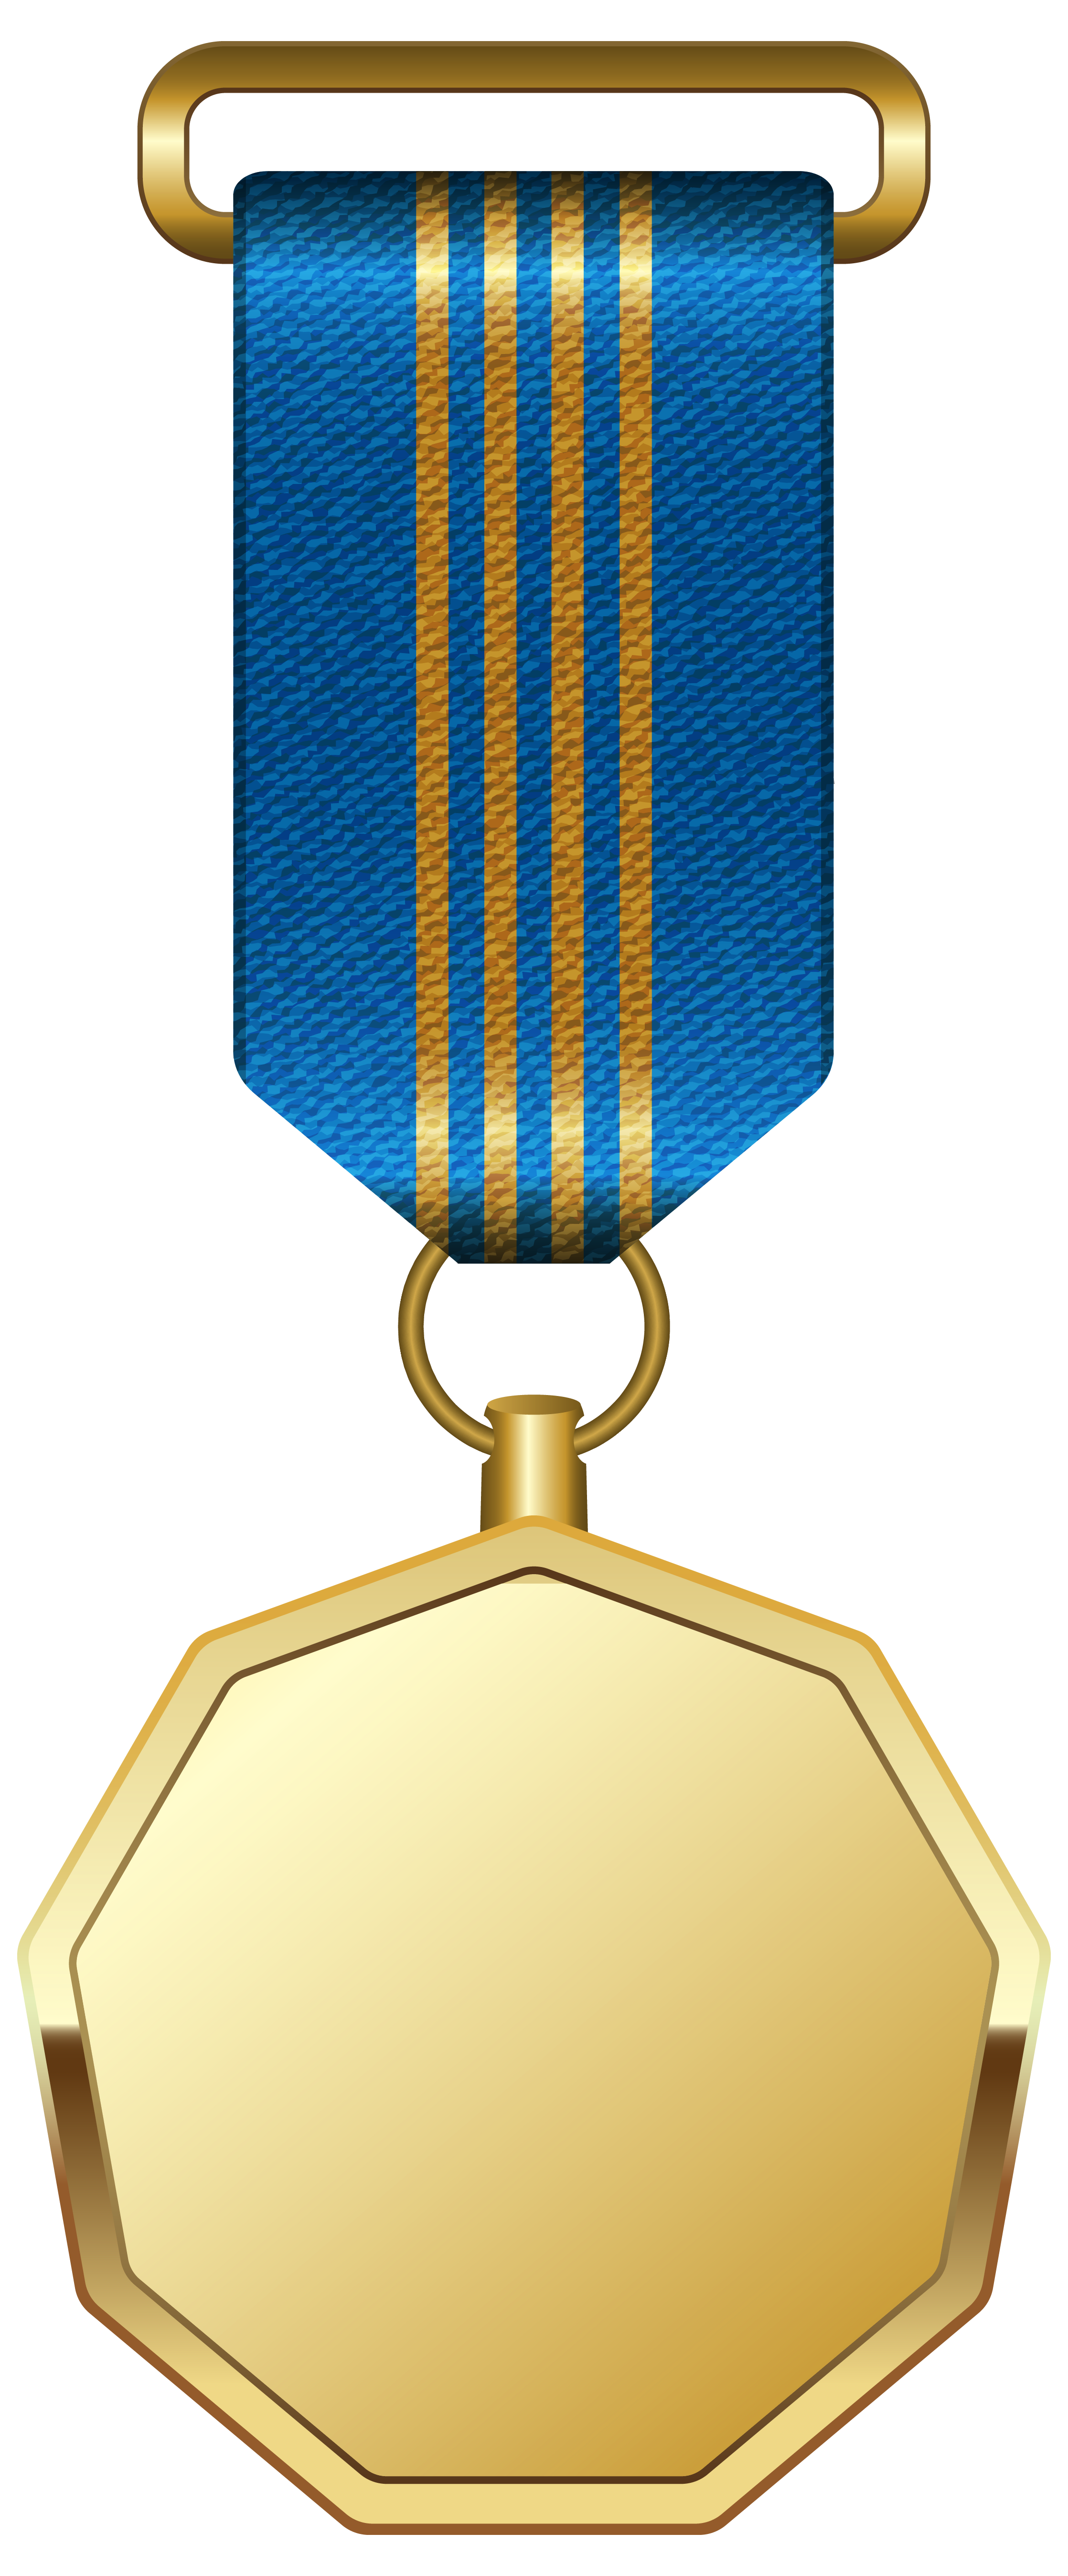 Blue ribbon png. Gold medal with clipart